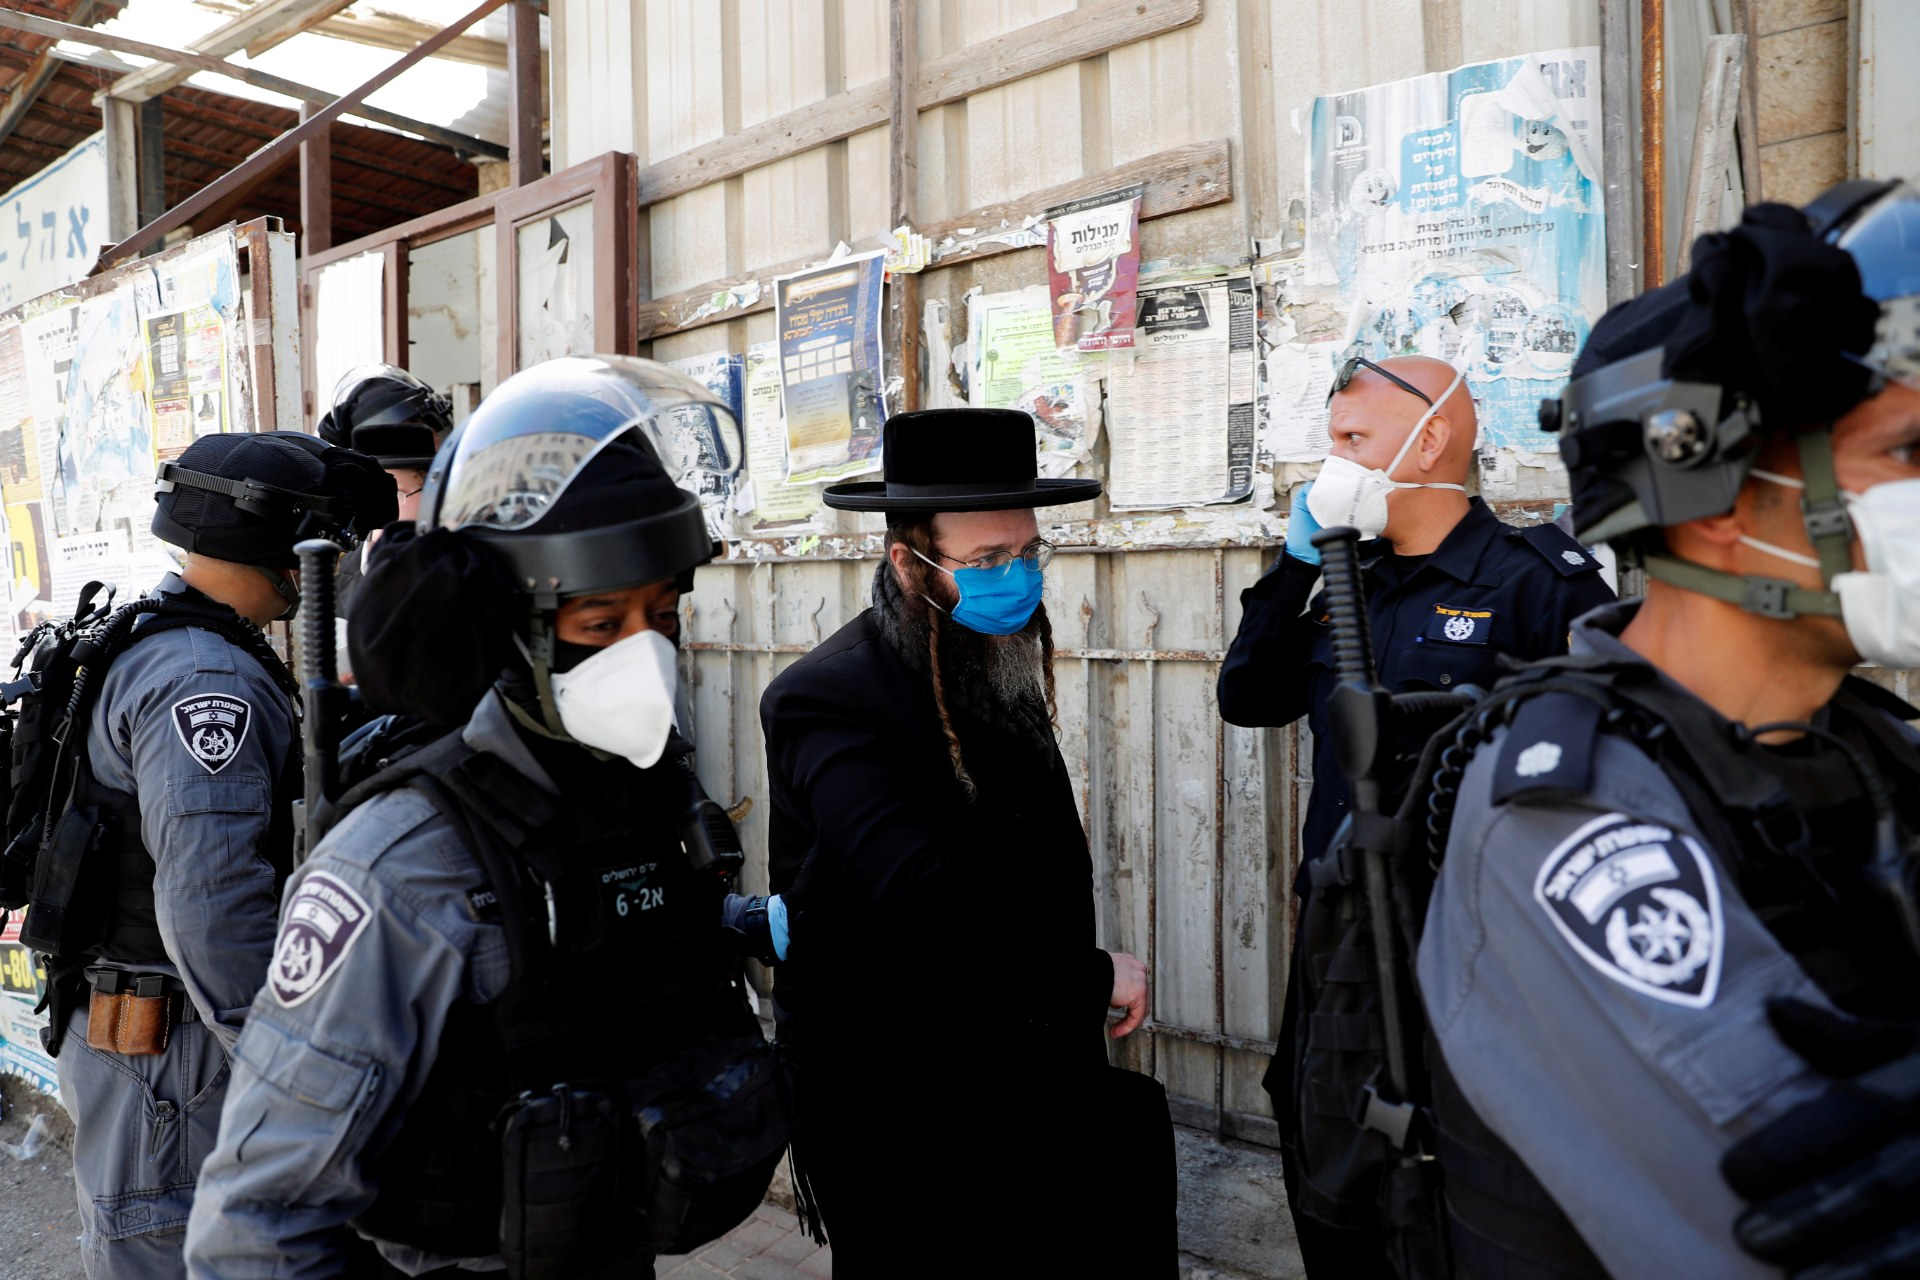 Israeli police detain an Ultra-Orthodox Jewish man for defying government restrictions set in place to curb the spread of the coronavirus disease, in th Mea Shearim neighborhood of Jerusalem (Reuters)